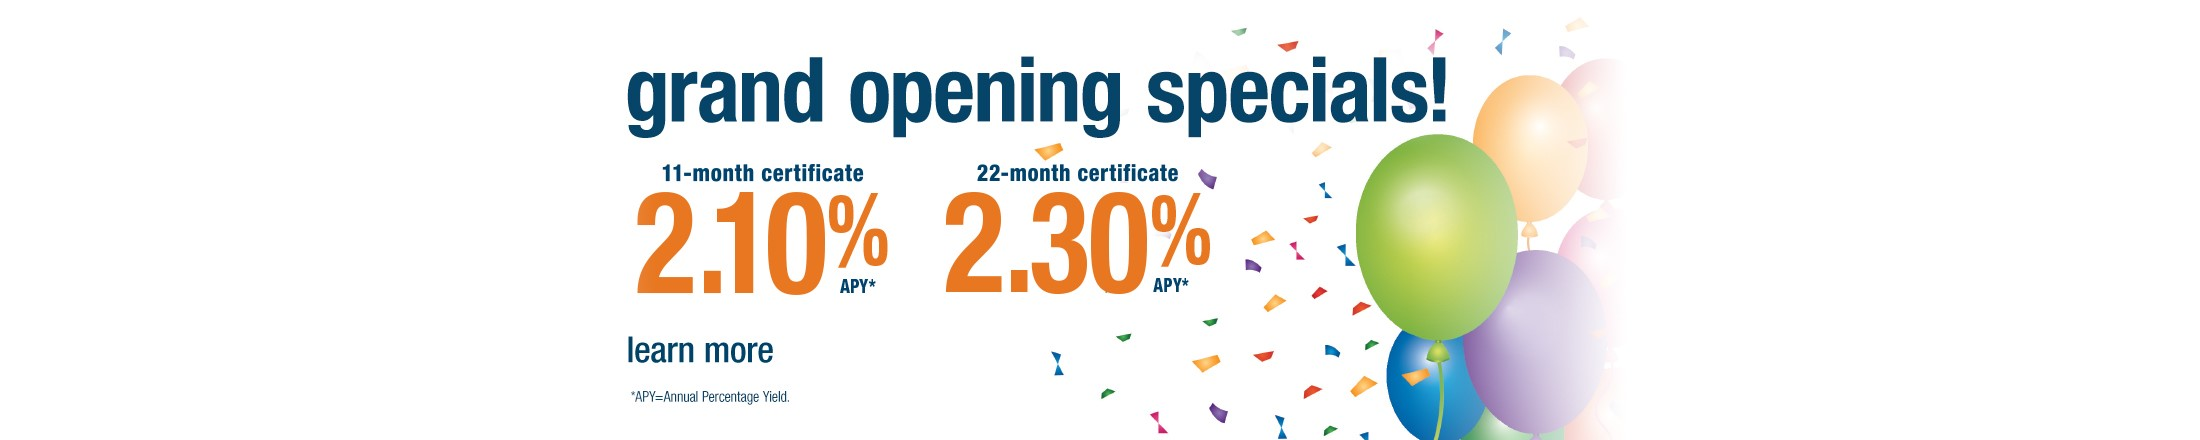 Grand Opening certificate specials. 11-month certificate 2.10% APY  and 22-month certificate 2.30% APY